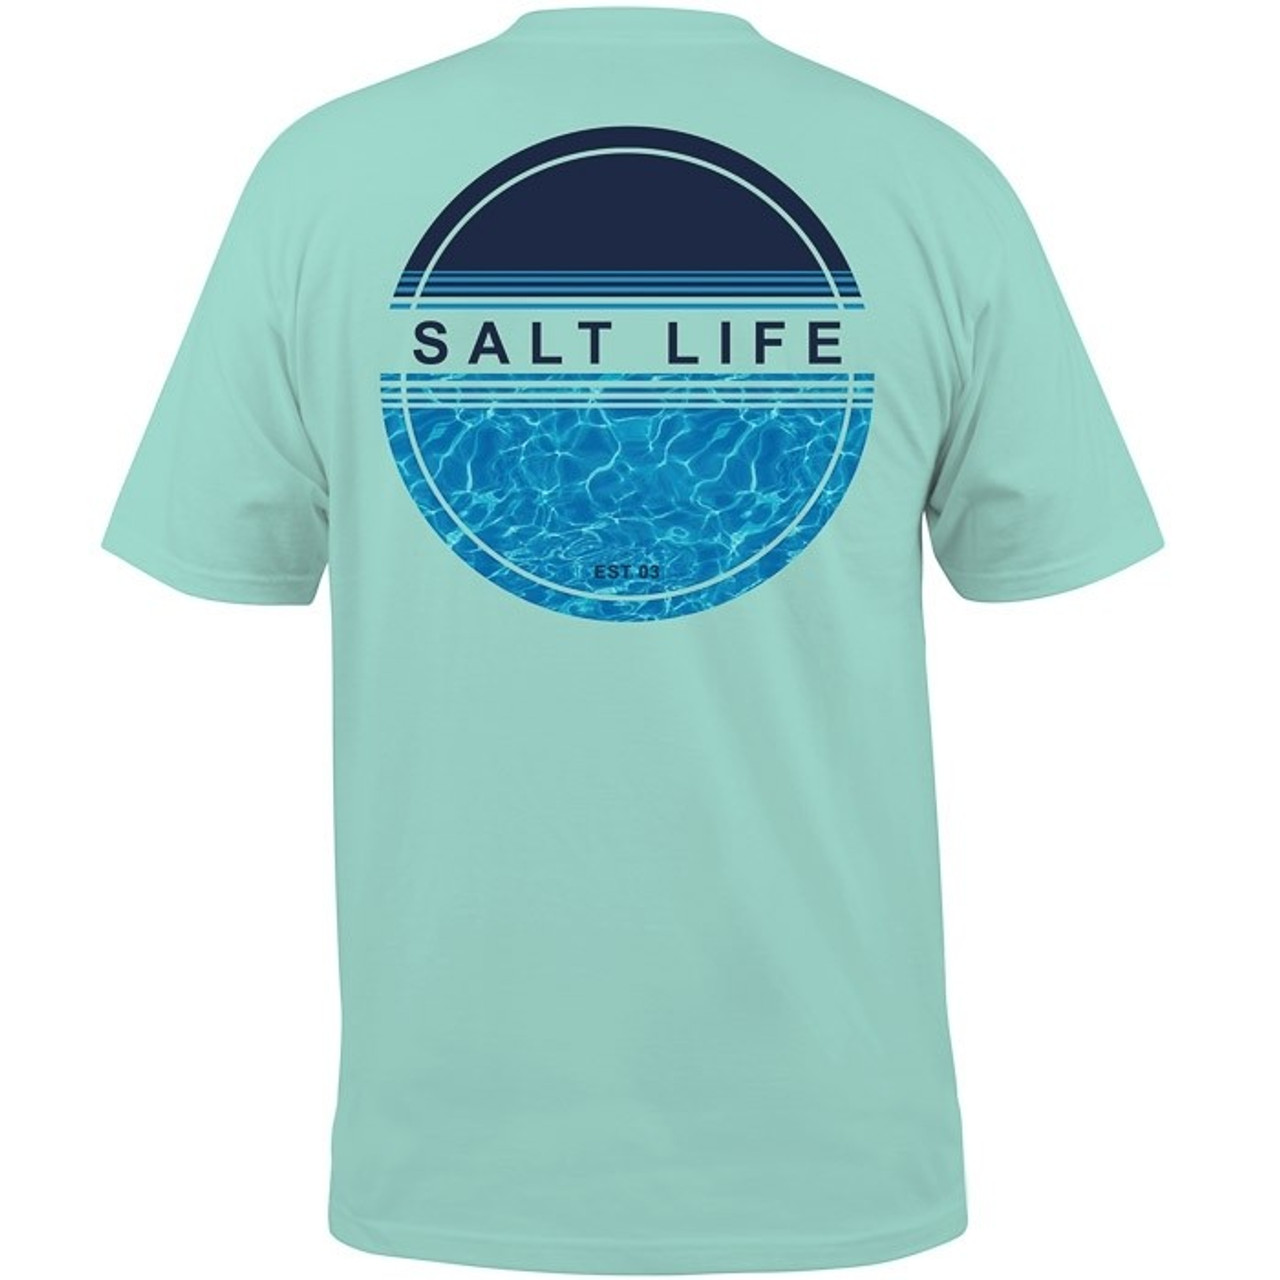 0cf3b39d25d Salt Life Calm Waters Aruba Blue - Girls Round Here